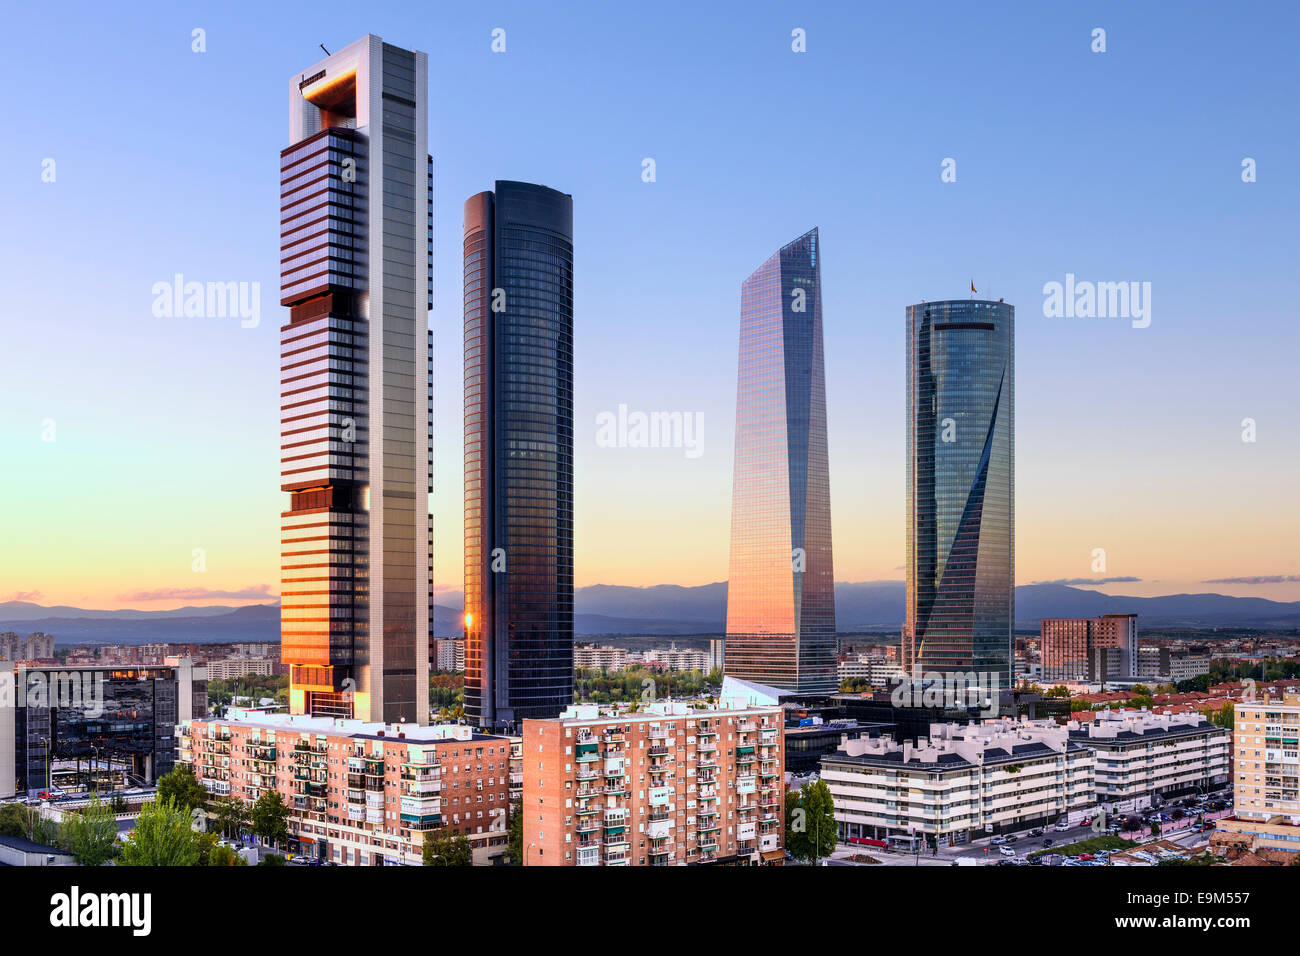 Madrid, Espagne financial district skyline at Dusk. Photo Stock